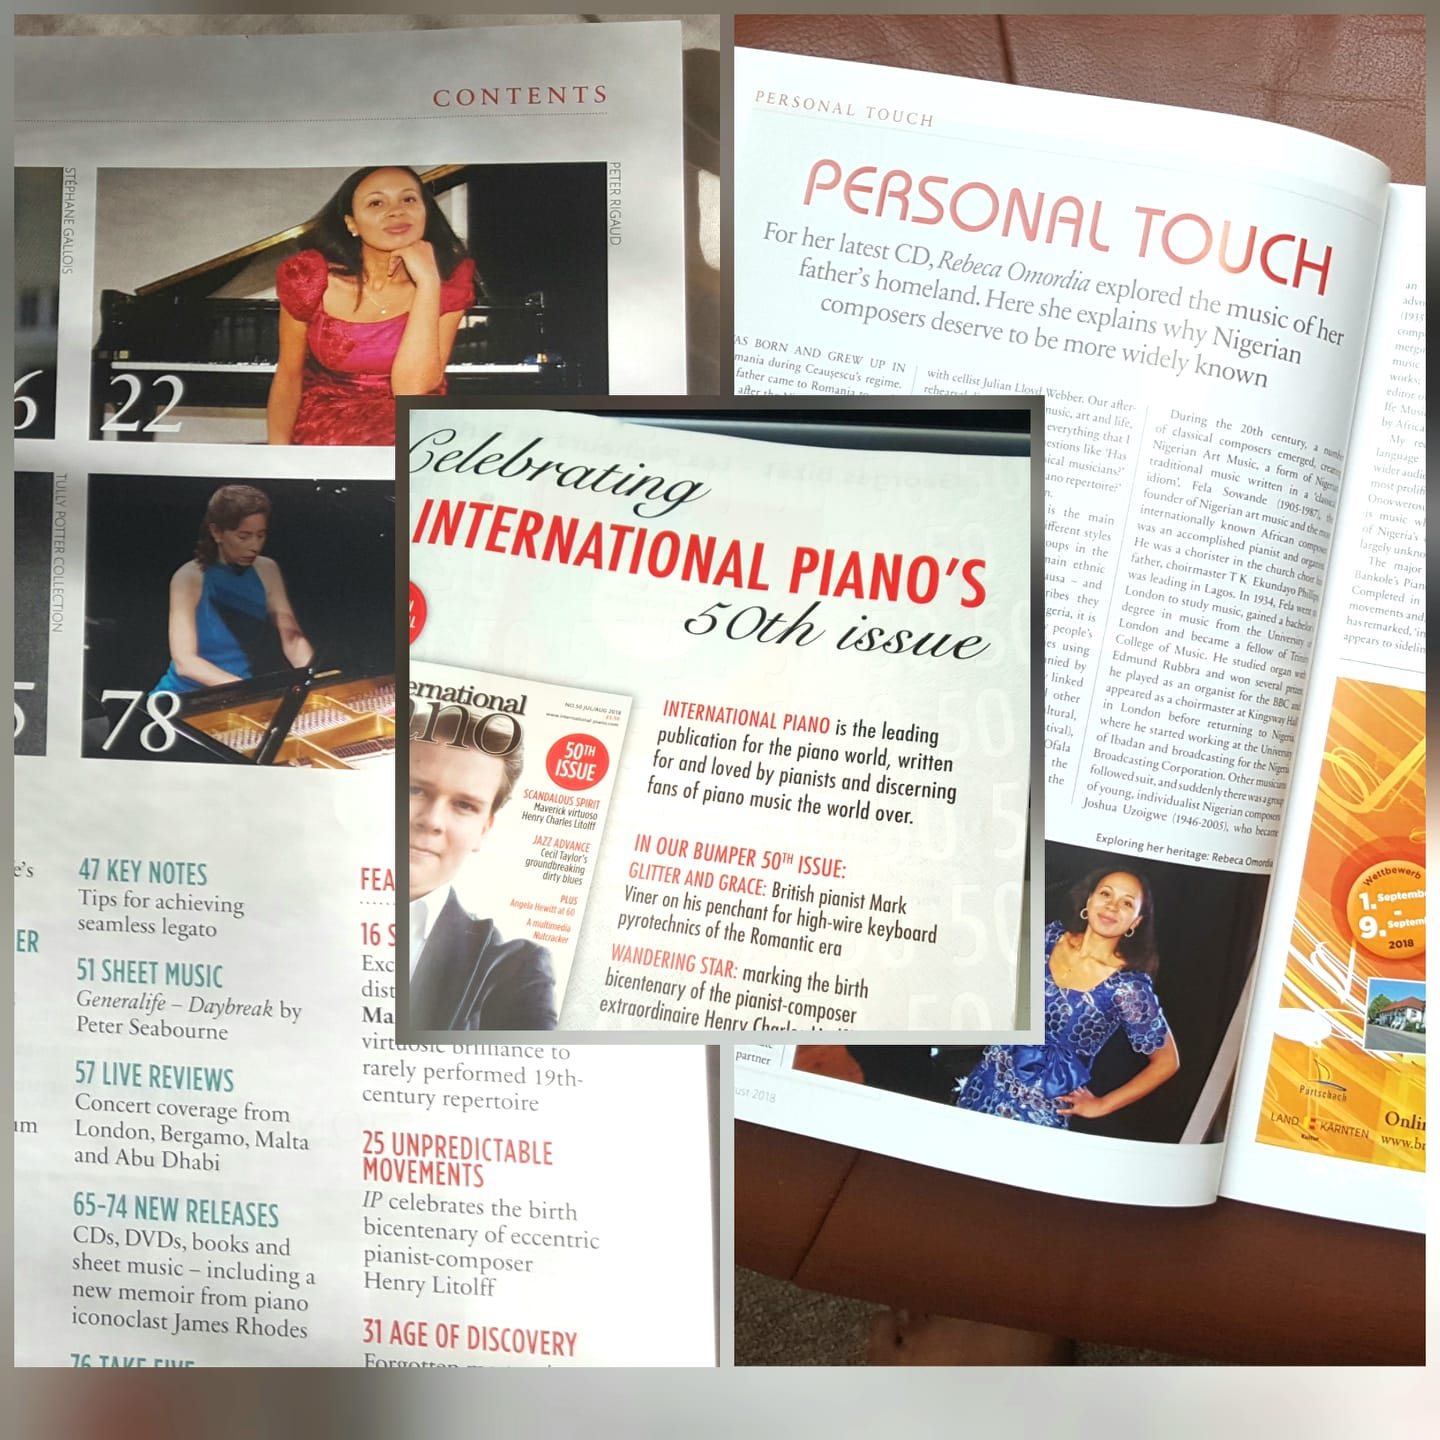 International Piano Magazine - Rebeca's new album of African piano music is featured in the 50th anniversary issue of the International Piano Magazine